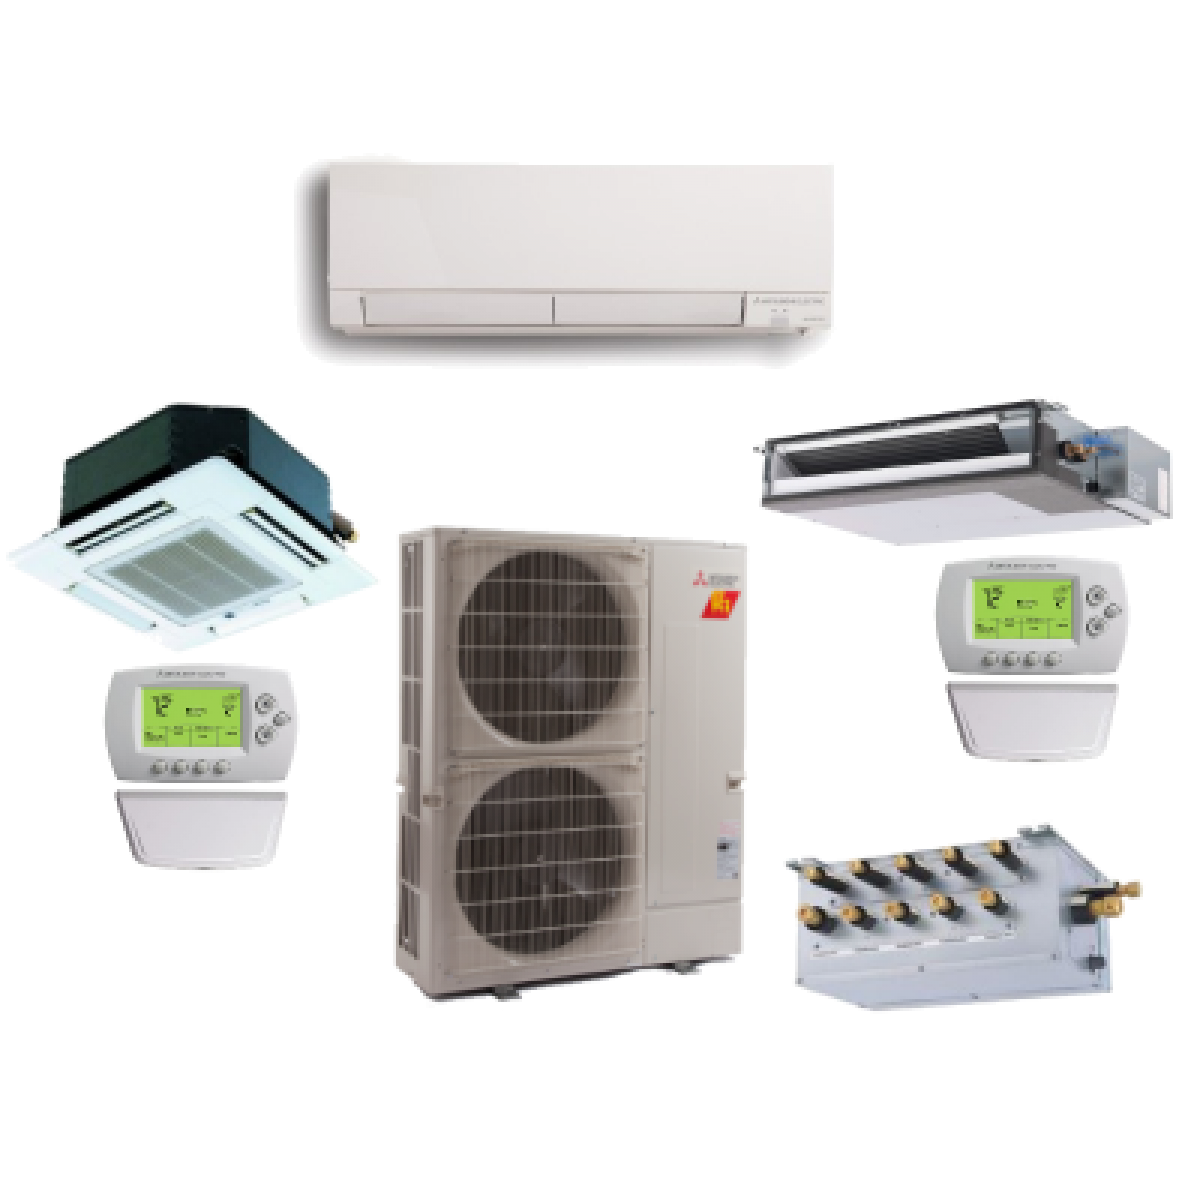 conditioner split depot and mitsubishi air pump cost cooling ton units splits the home mini p heating ductless ramsond btu heat